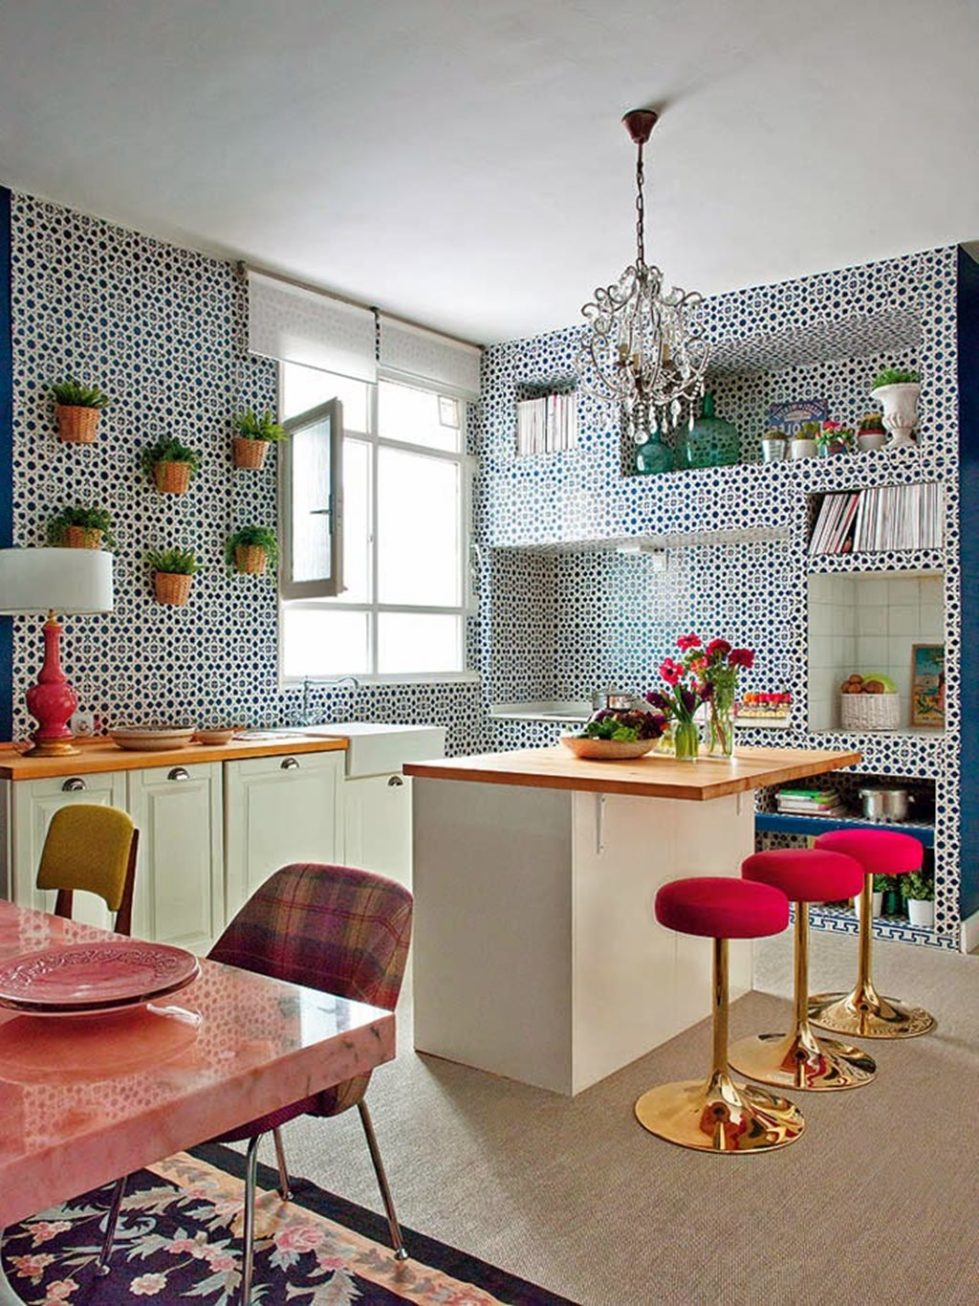 The Fusion Style in Interior - Kitchen